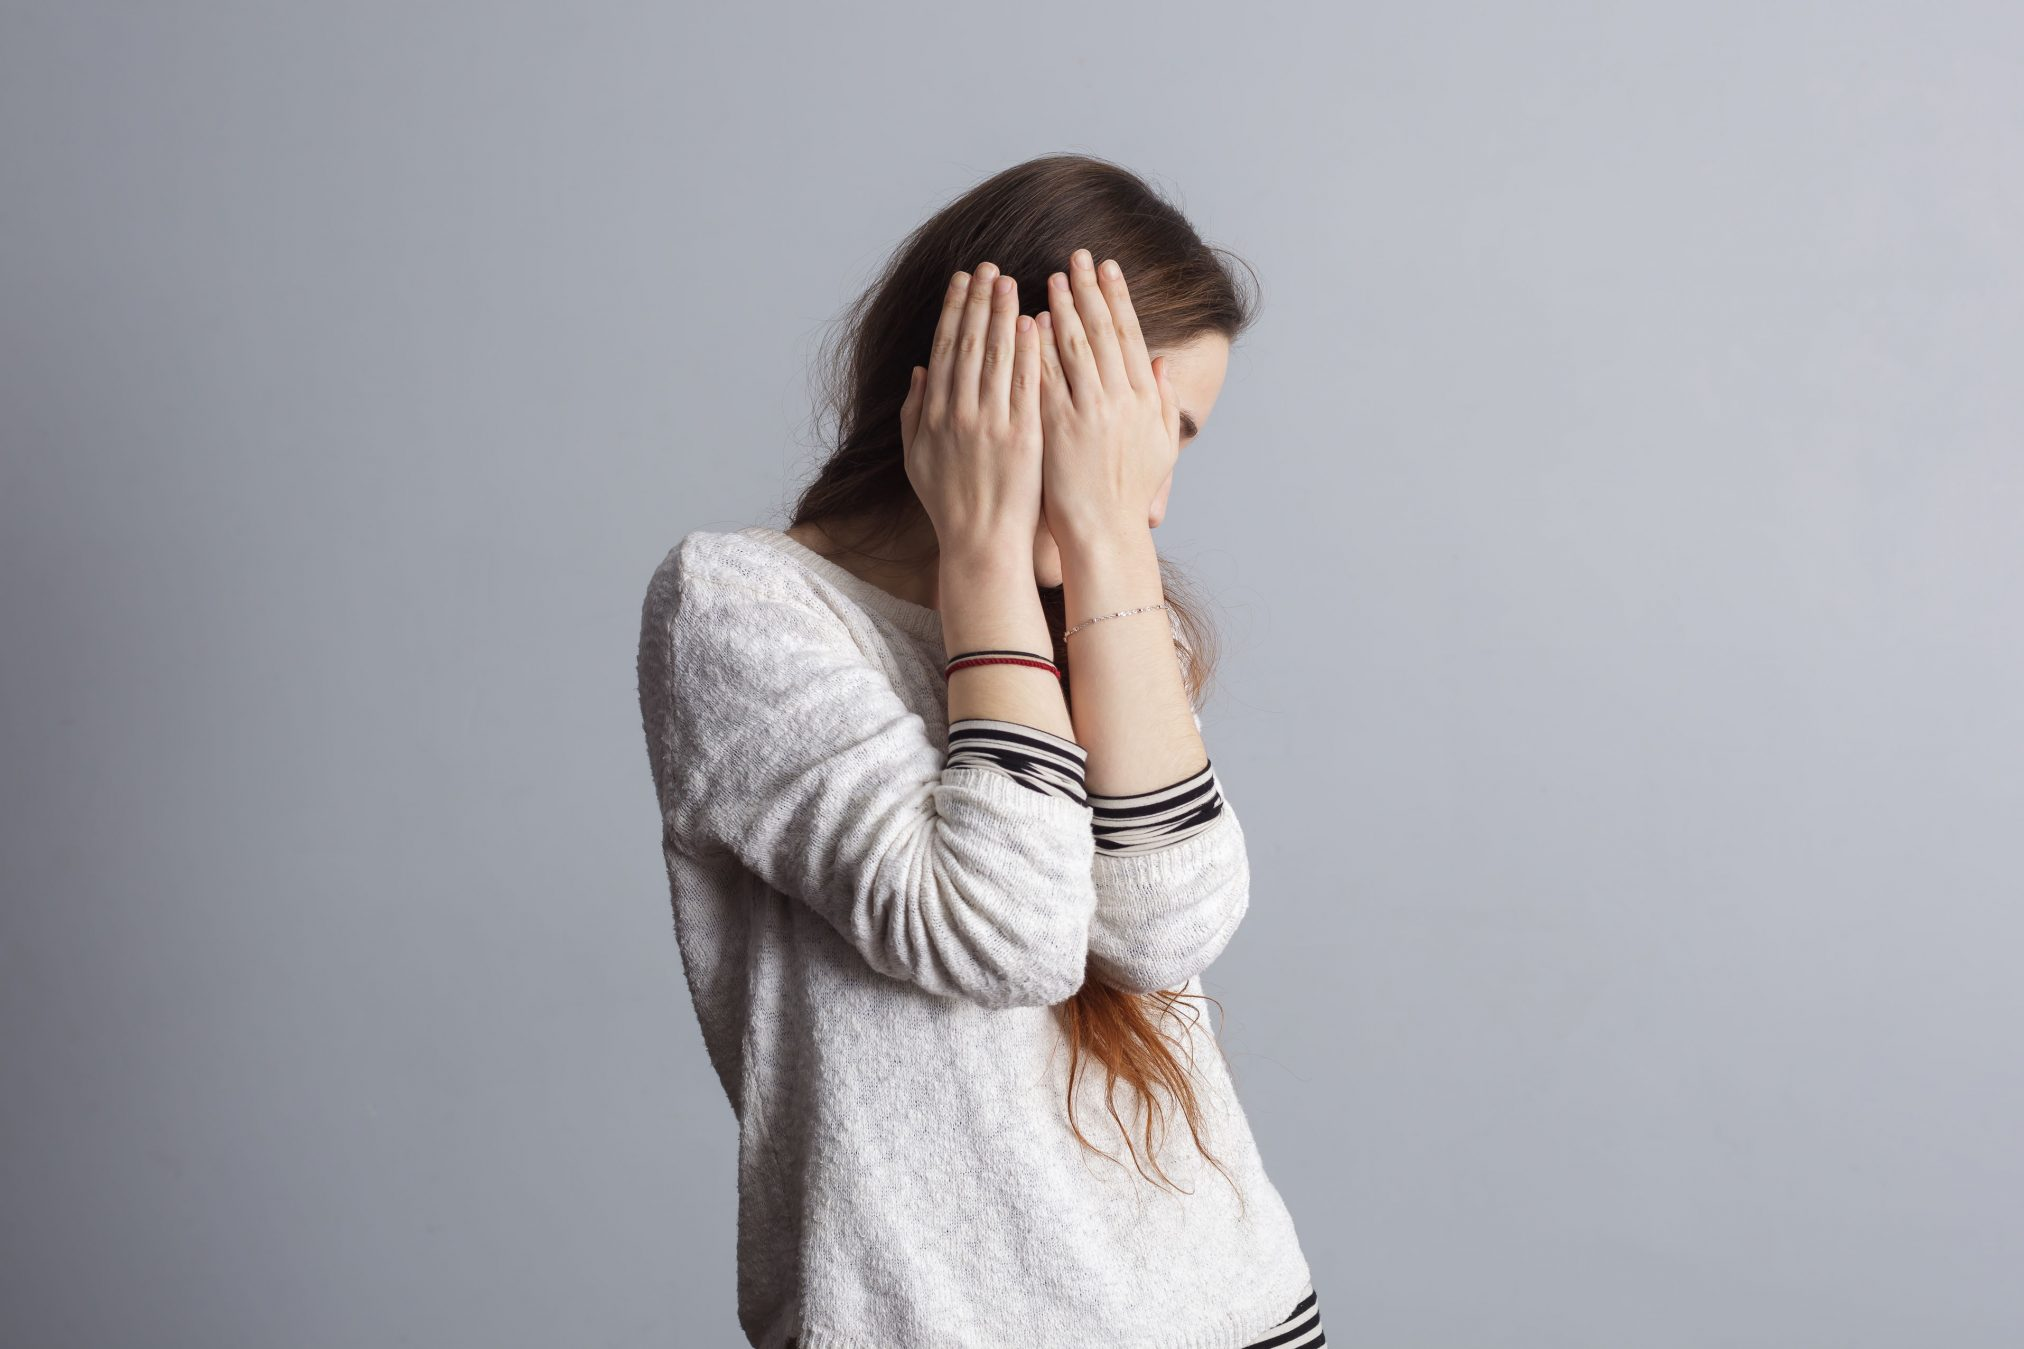 shy embarrassed young woman hiding face covering face